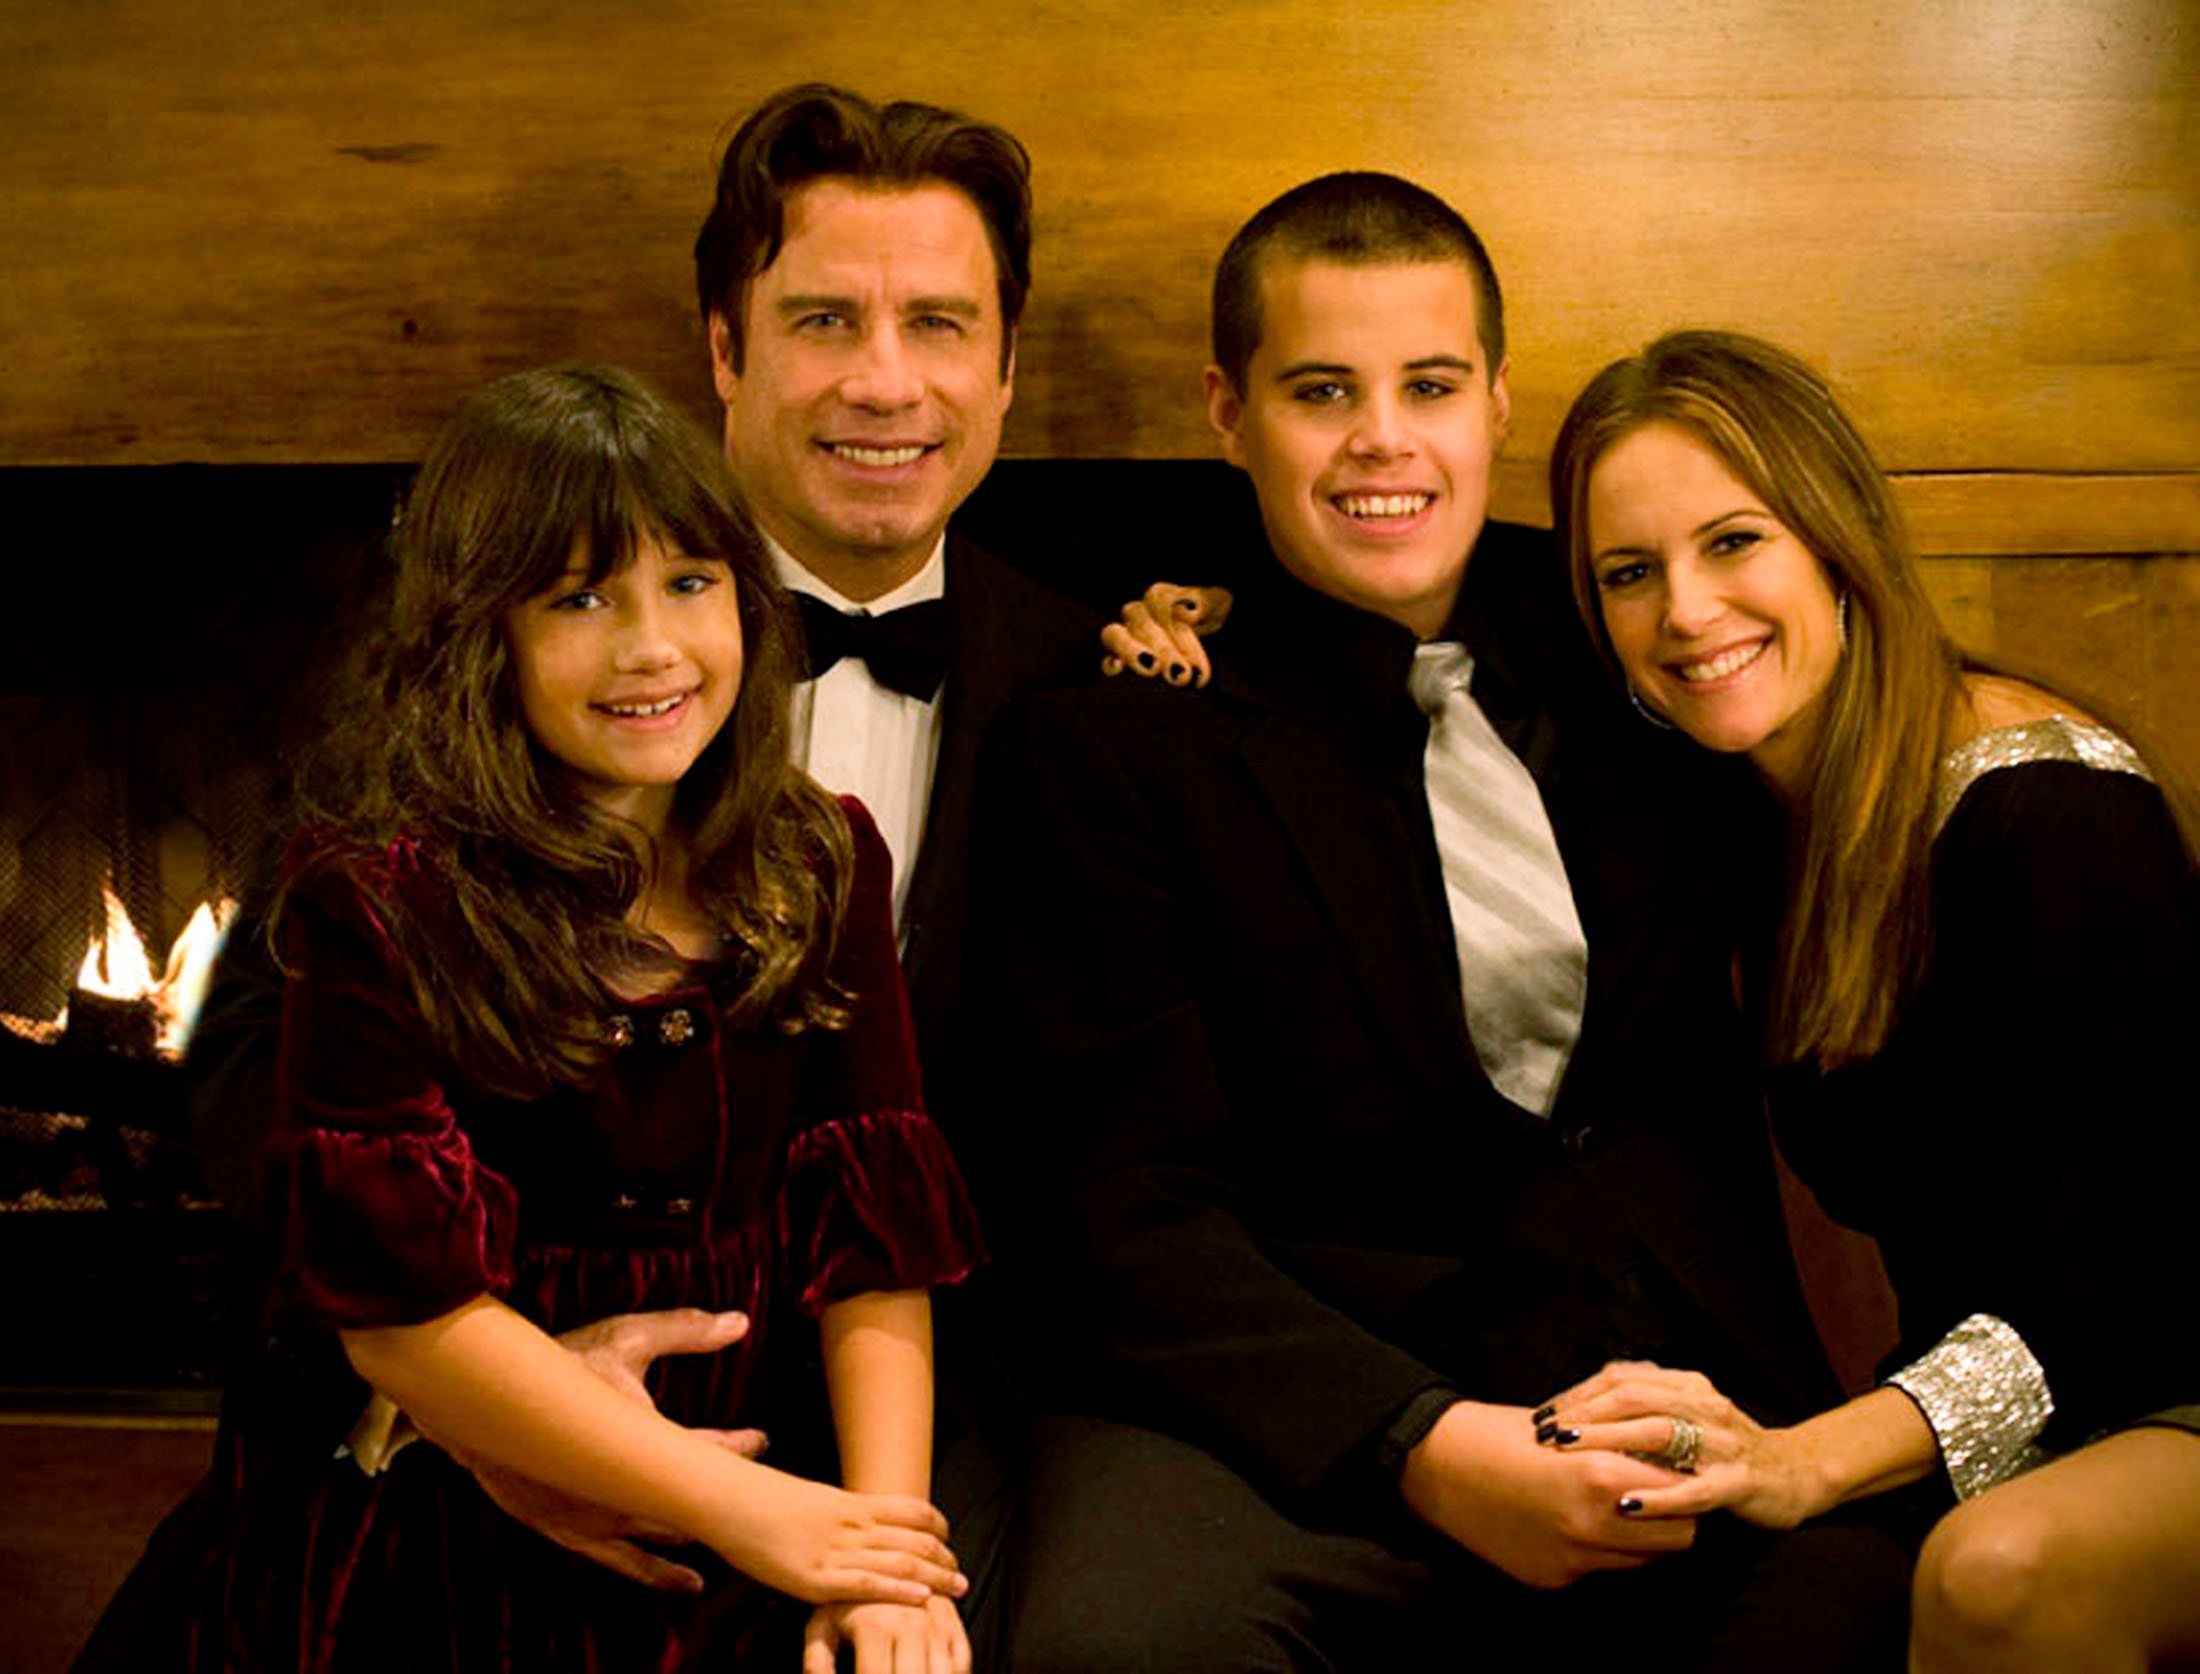 "Members of the Travolta family are pictured in this undated photograph, released January 4, 2009. Actor John Travolta (2nd L) broke a two-day silence over the death of his 16-year-old son Jett (2nd R) on Sunday, saying he and his wife, actress Kelly Preston (R), were ""heartbroken"" by their sudden loss. Jett, who had a history of seizures, was found unconscious  in a bathroom at his family's home at the Old Bahama Bay resort on Grand Bahama Island on Friday morning. Daughter Ella is pictured at left. REUTERS/Courtesy of the Travolta family/Rogers & Cowan/Handout (UNITED STATES)    MANDATORY CREDIT.  FOR EDITORIAL USE ONLY. NOT FOR SALE FOR MARKETING OR ADVERTISING CAMPAIGNS."